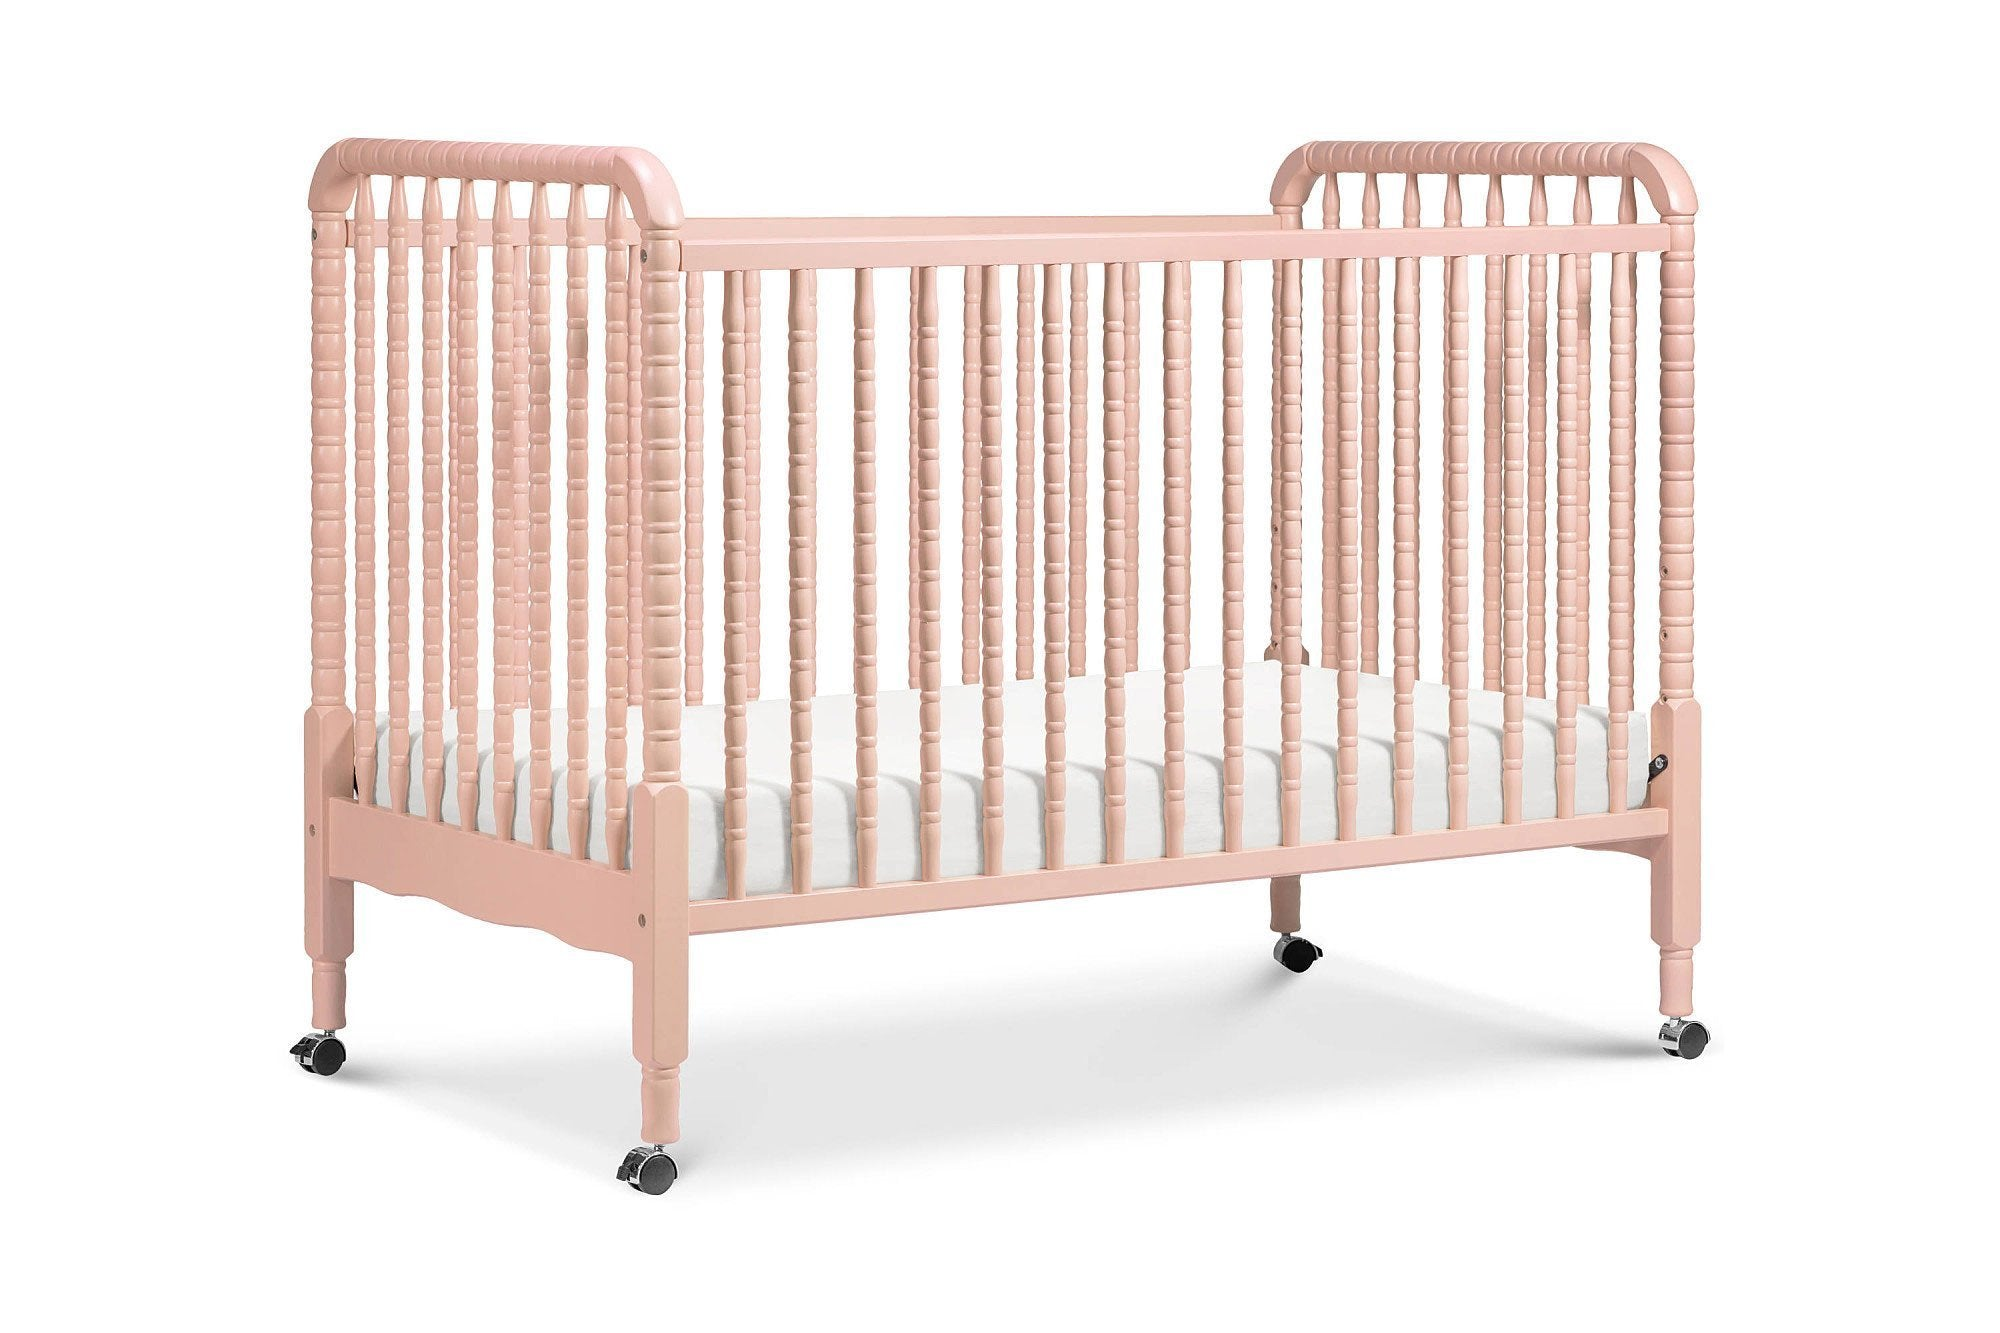 Davinci jenny lind 3 in 1 convertible crib special colors our new baby inc